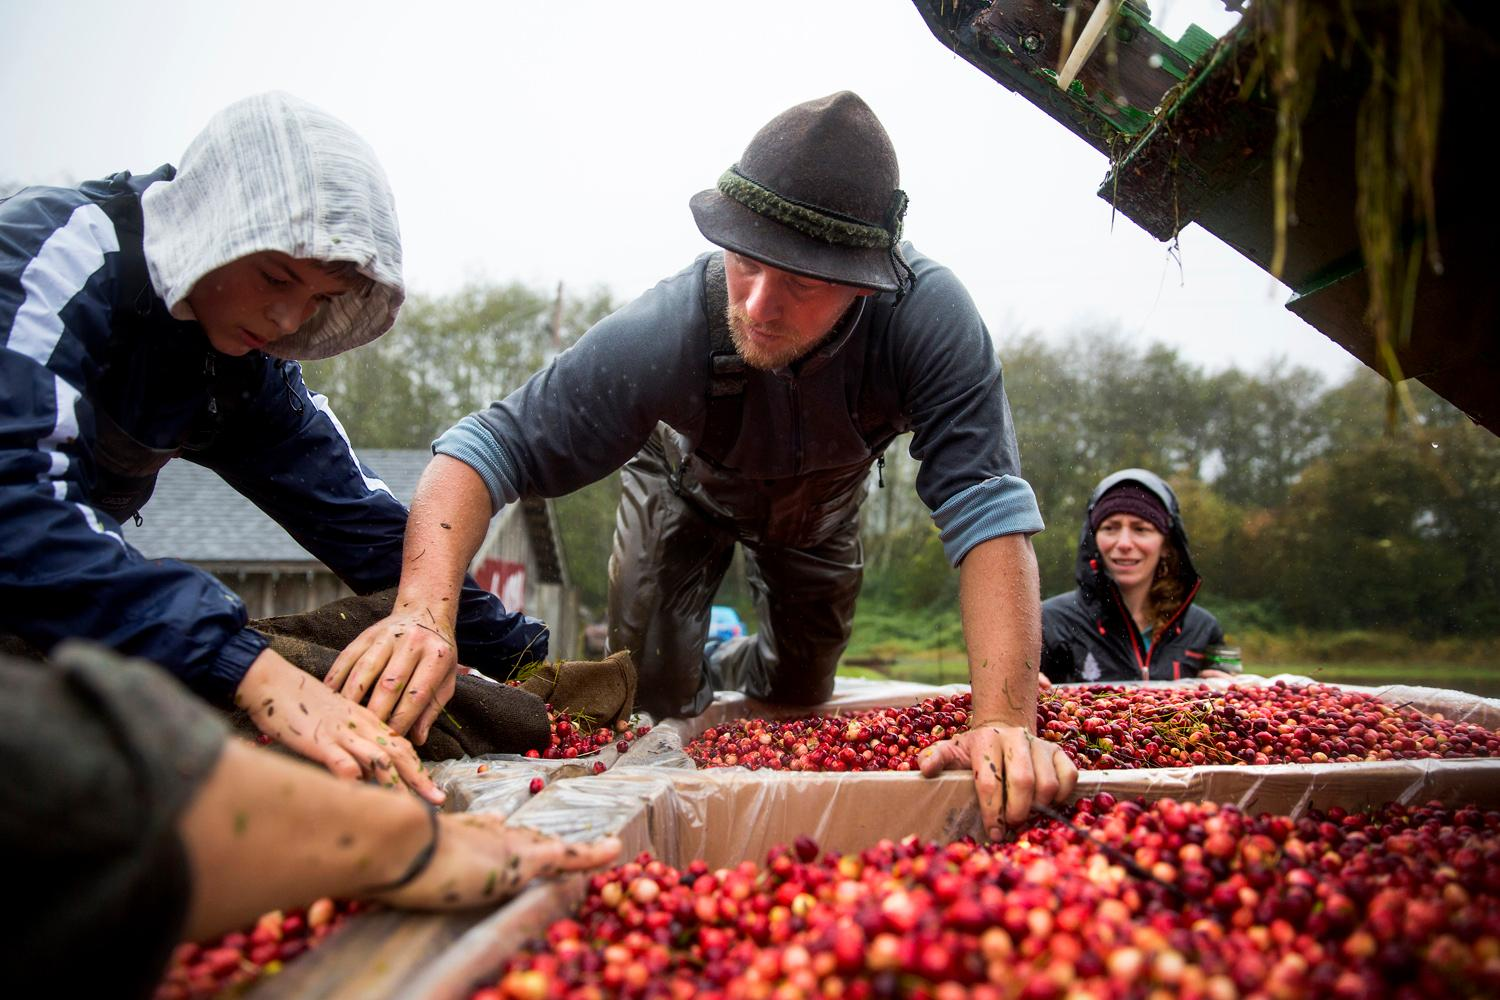 Jared Oakes, co-owner of Starvation Alley Farms, pushes stray cranberries into their boxes after harvesting the second bog of the day in Long Beach. Although the yield of organic cranberry bogs are lower than conventional farming, the company reduced it's synthetic chemical footpring by 100 pounds per square acre or bog a year. (Sy Bean / Seattle Refined)